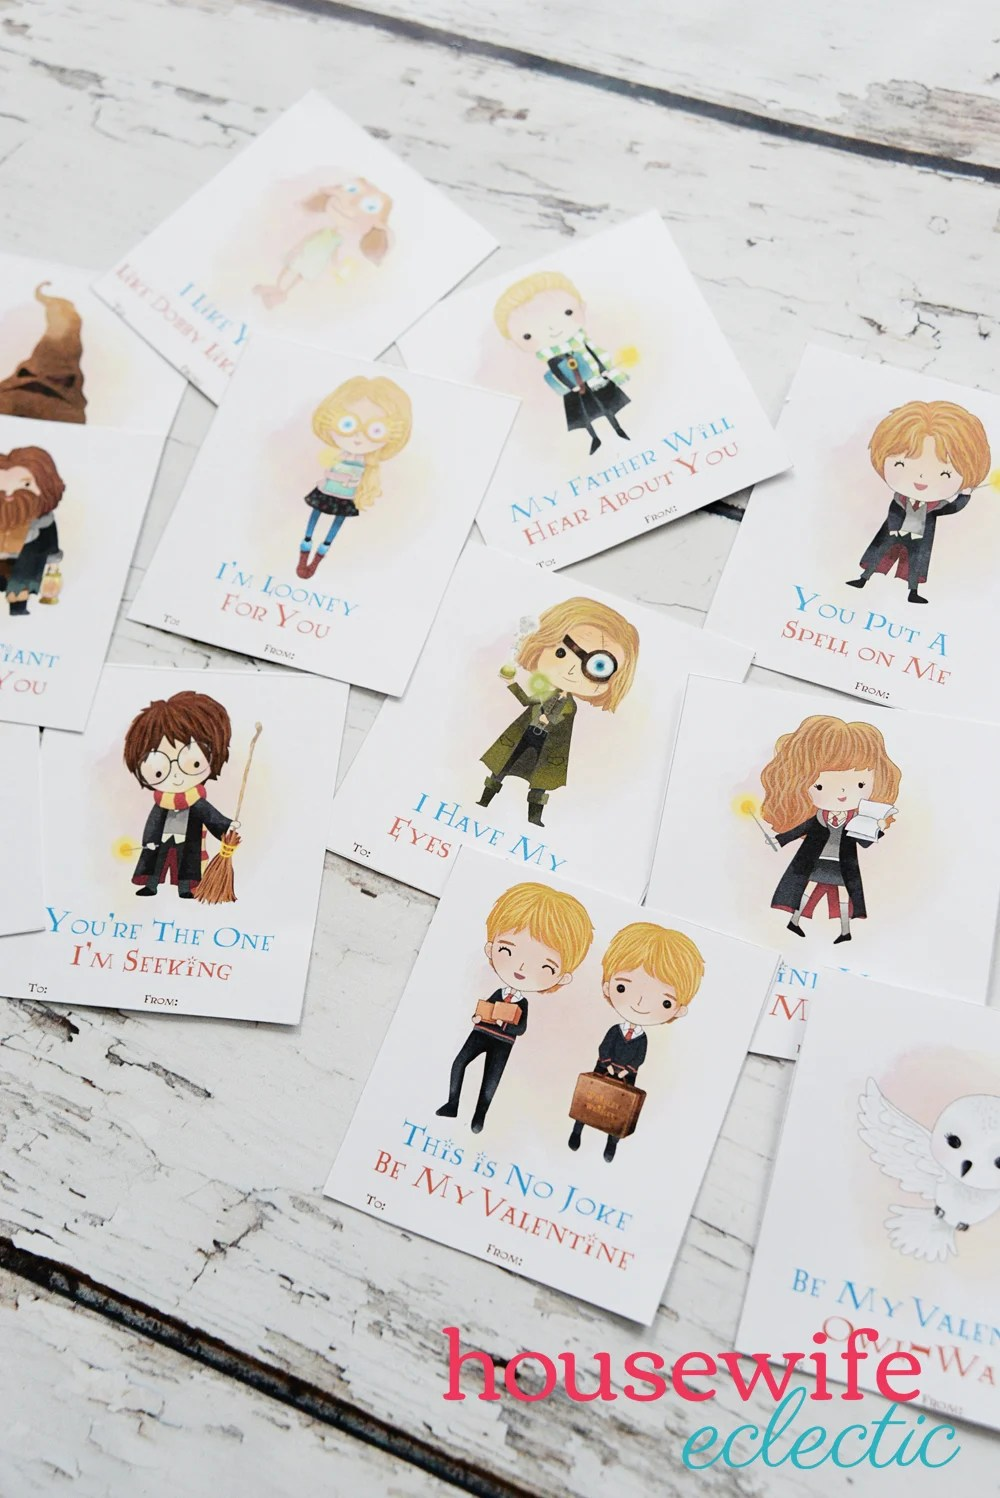 picture regarding Harry Potter Decorations Printable named Magical Harry Potter Printables - Online games, Occasion, Decor